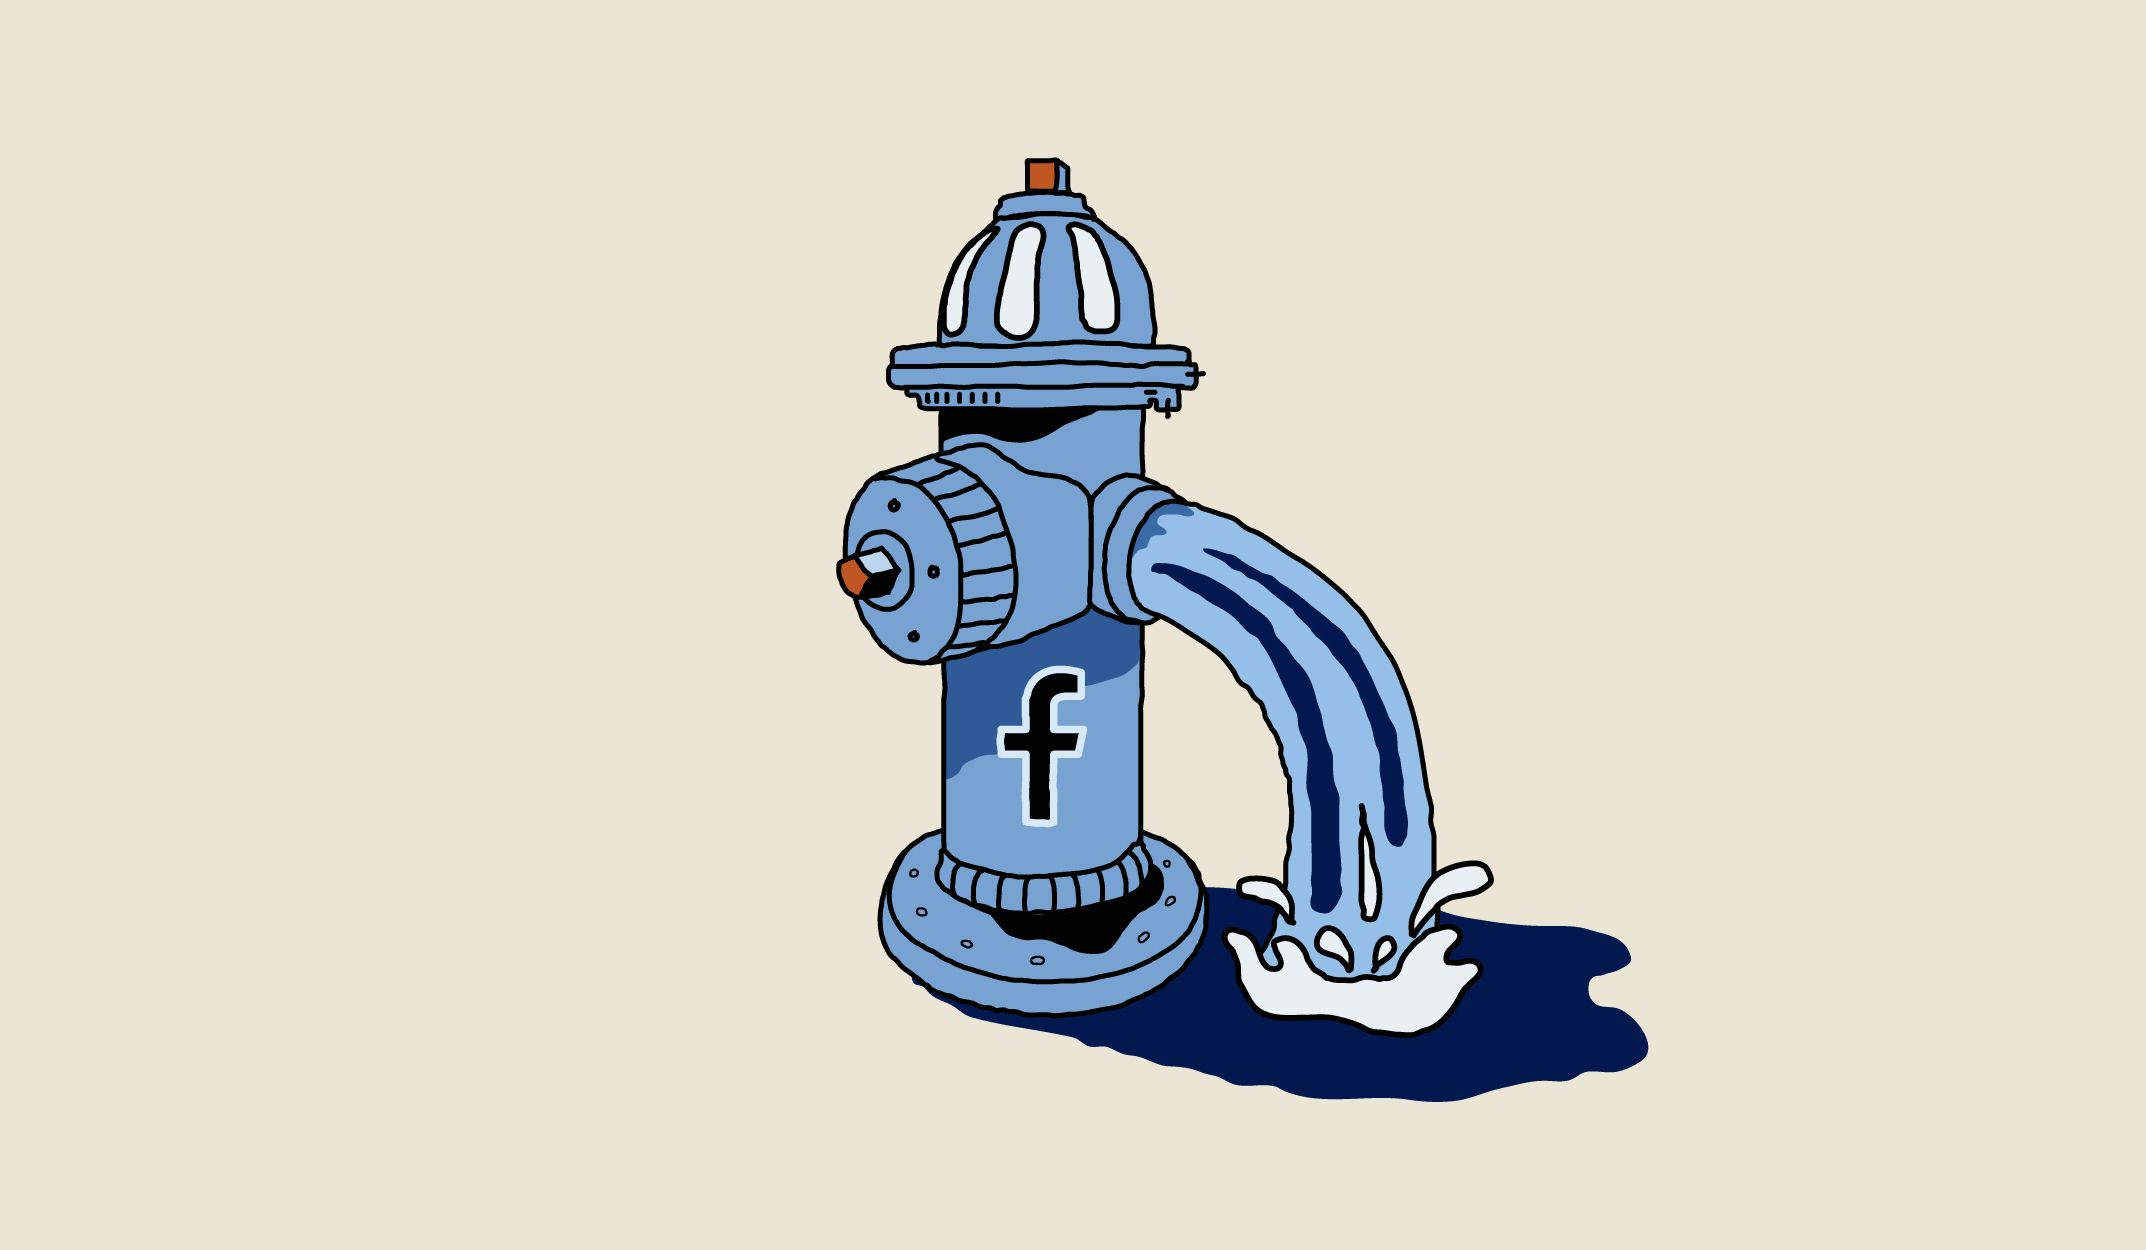 Illustration of a fire hydrant spraying water with the Facebook logo on the side.